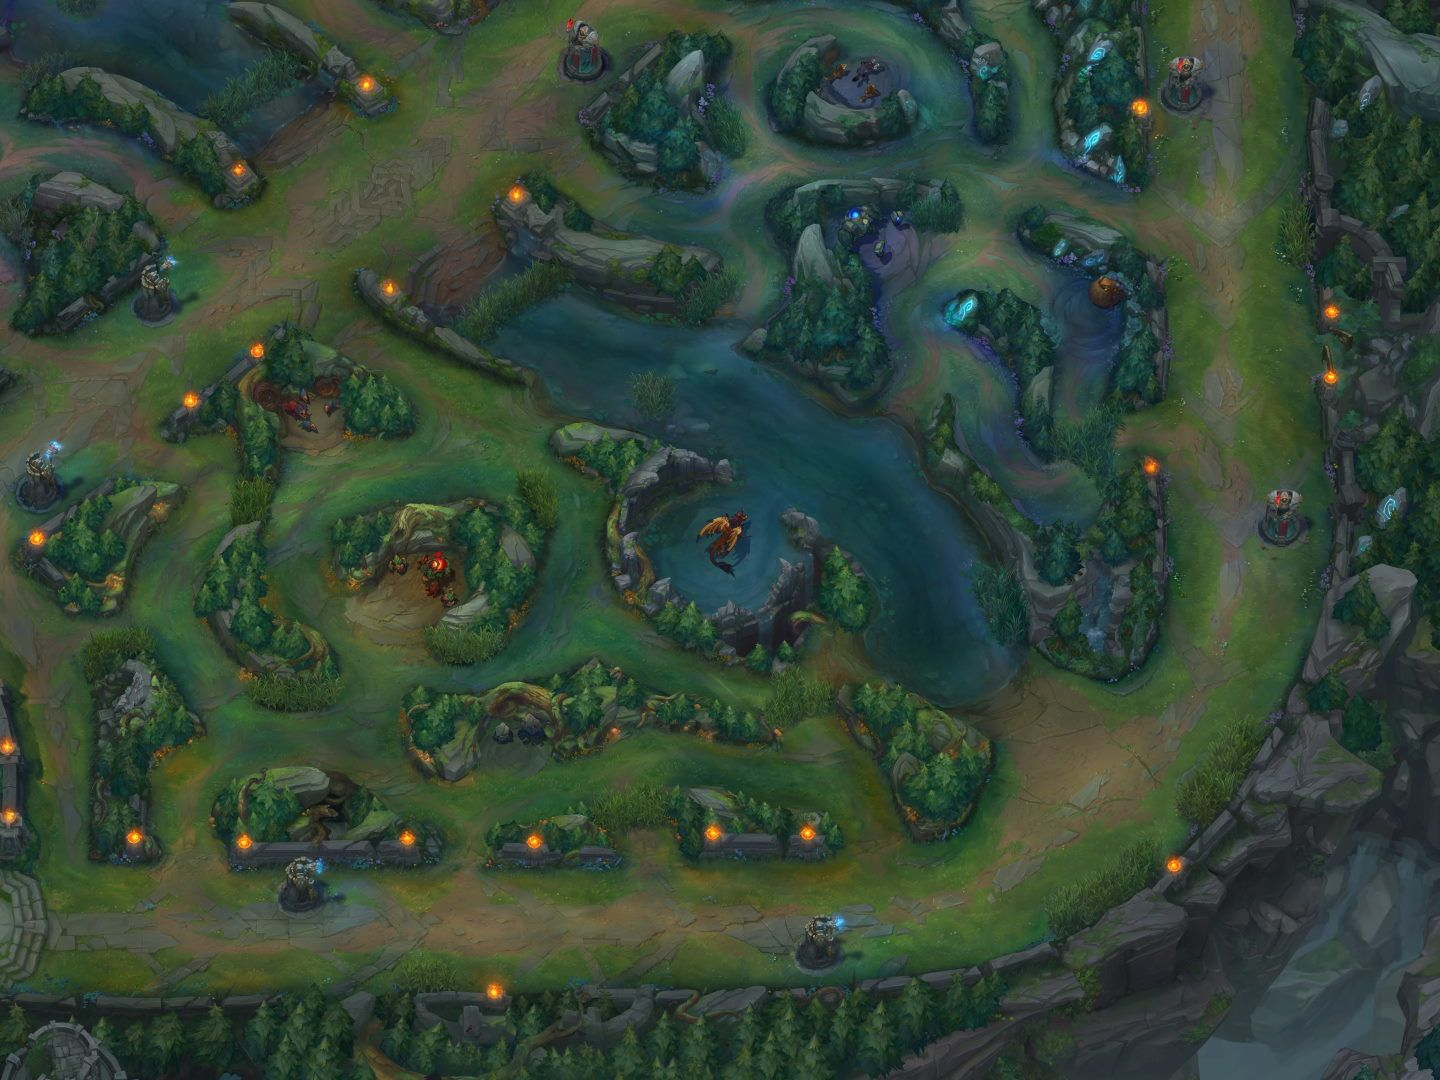 Drake Pit in League of Legends